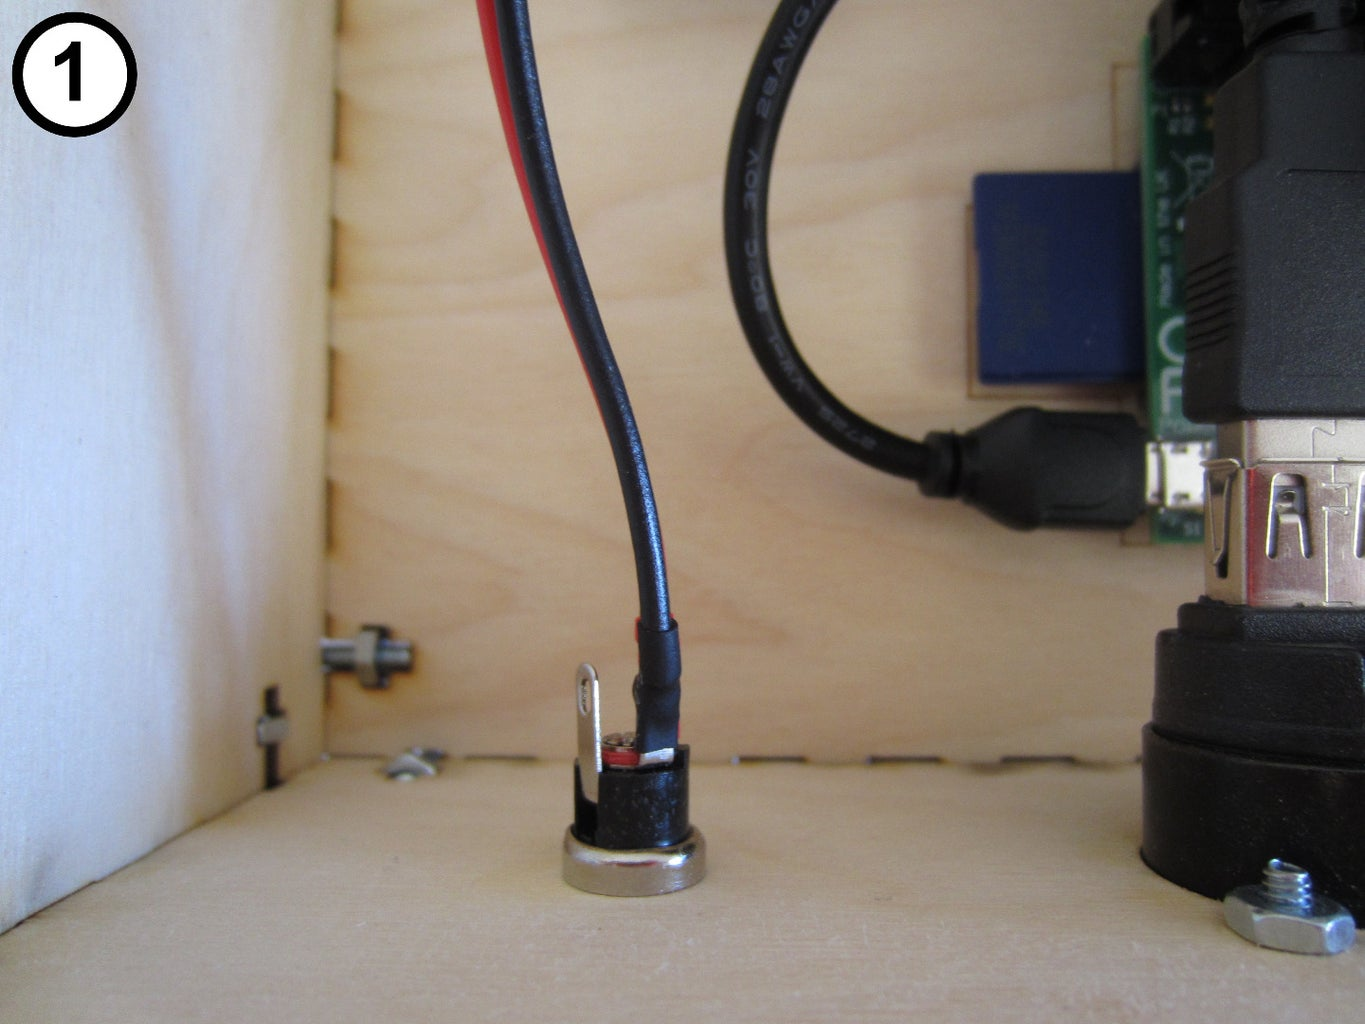 Attach the Lamp Power Port to the Case